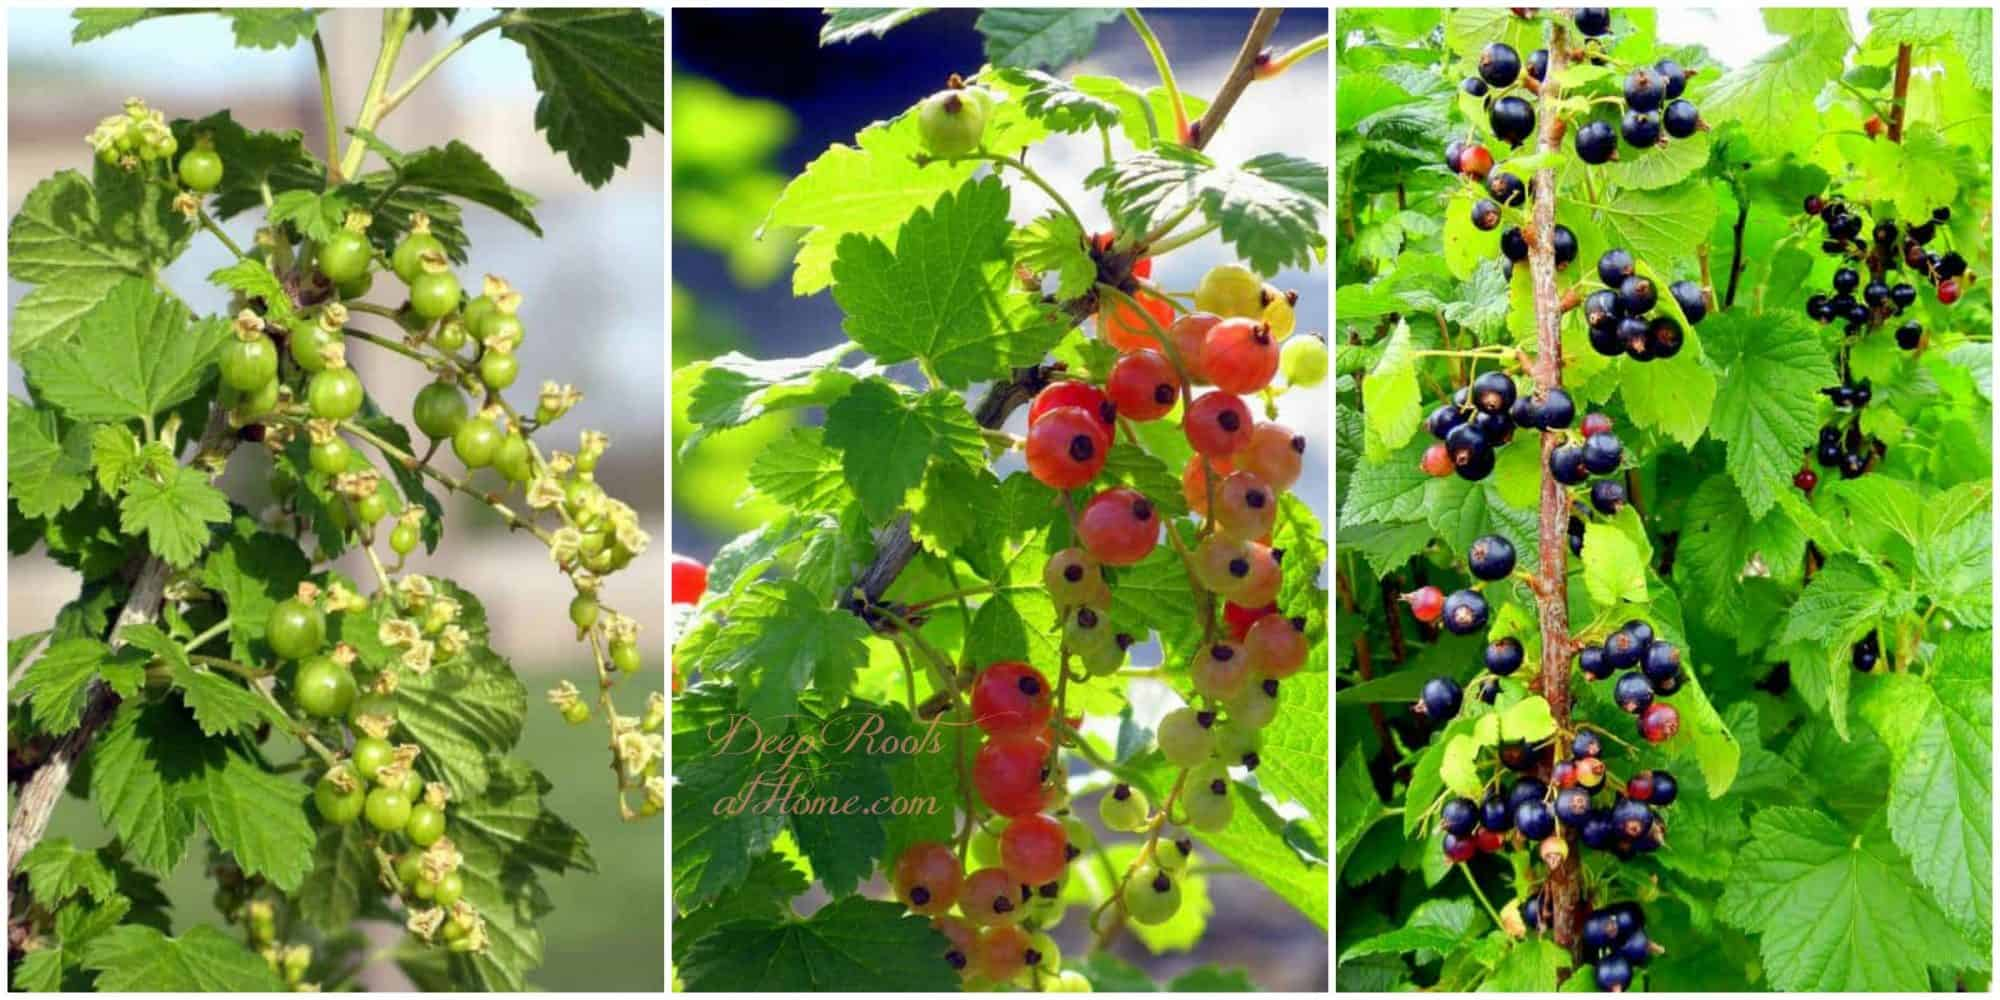 currants - putting up the harvest, European berries, not yet ripe